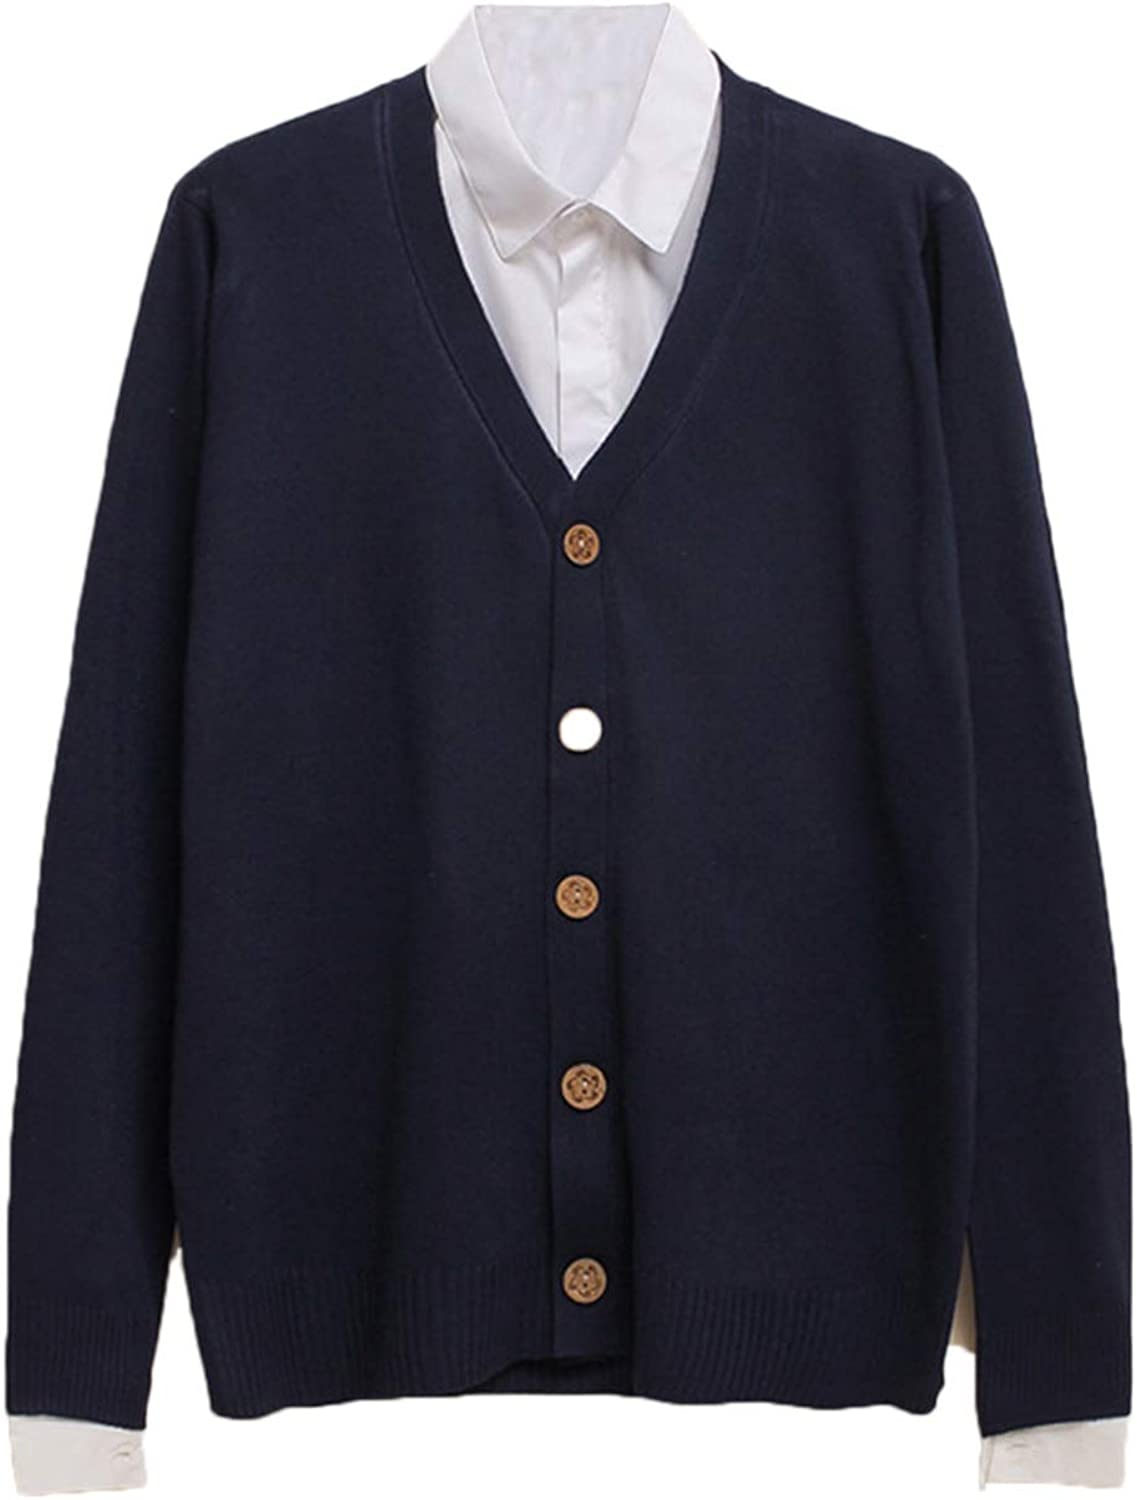 Mens Cardigan Long Sleeve Buttons Knitting Fit Classic Casual Outwear